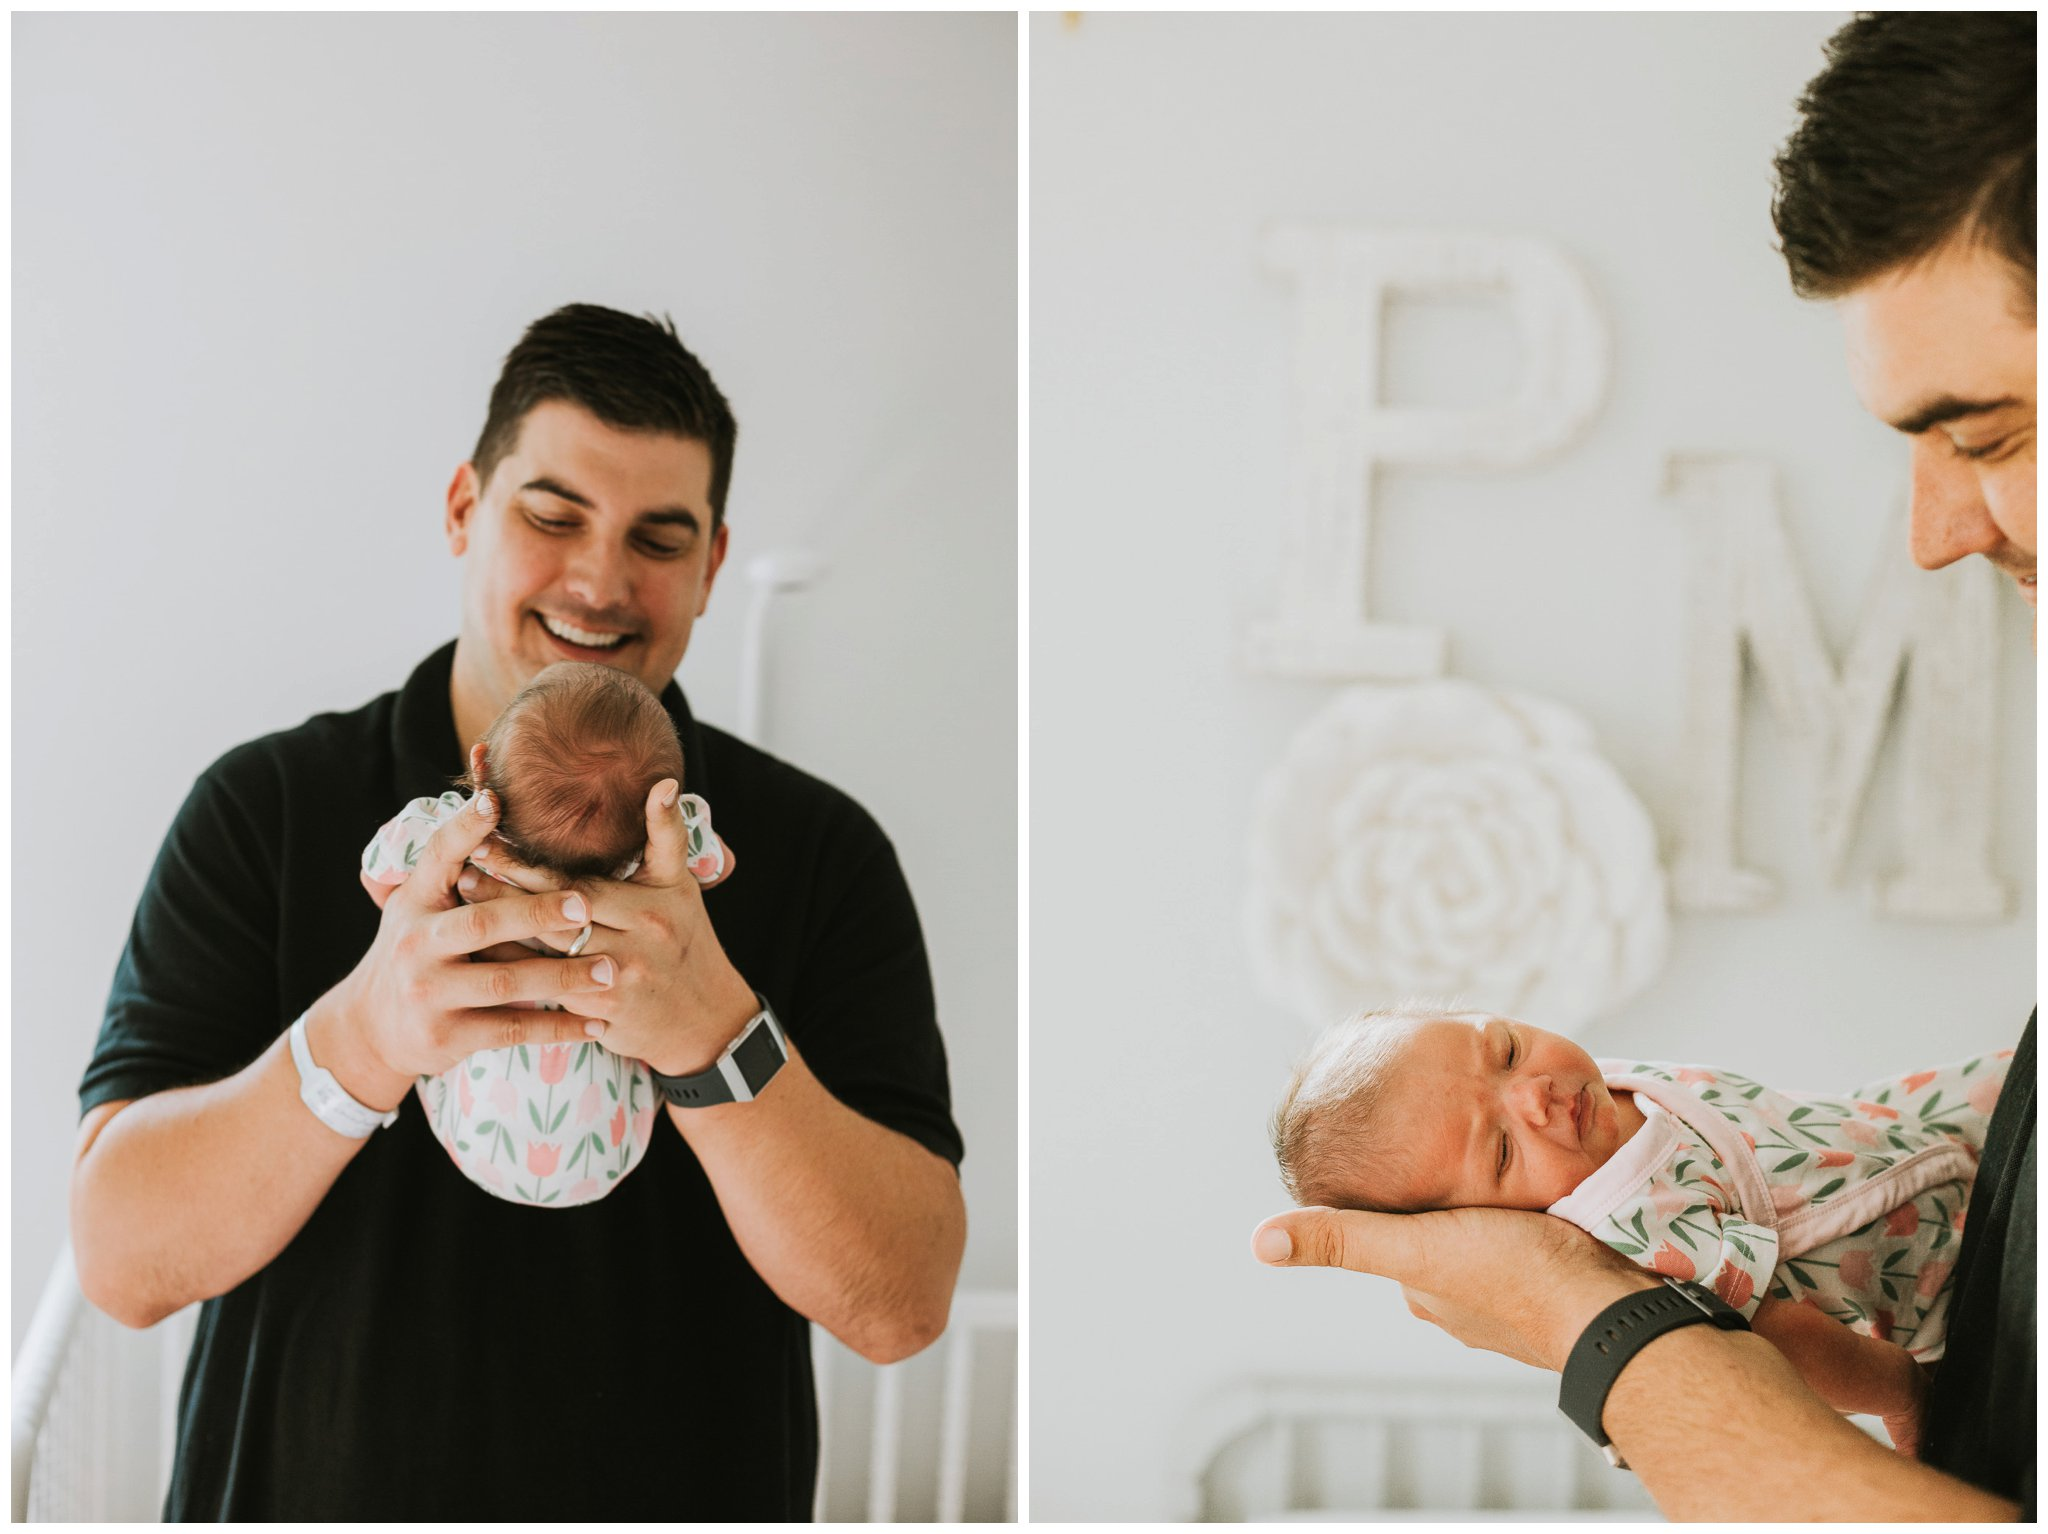 Kimberly Smith Photography| Home Photography| Home Sessions| Jupiter Florida Photographer| Newborn Photos| Jupiter Newborn Photographer_0006.jpg